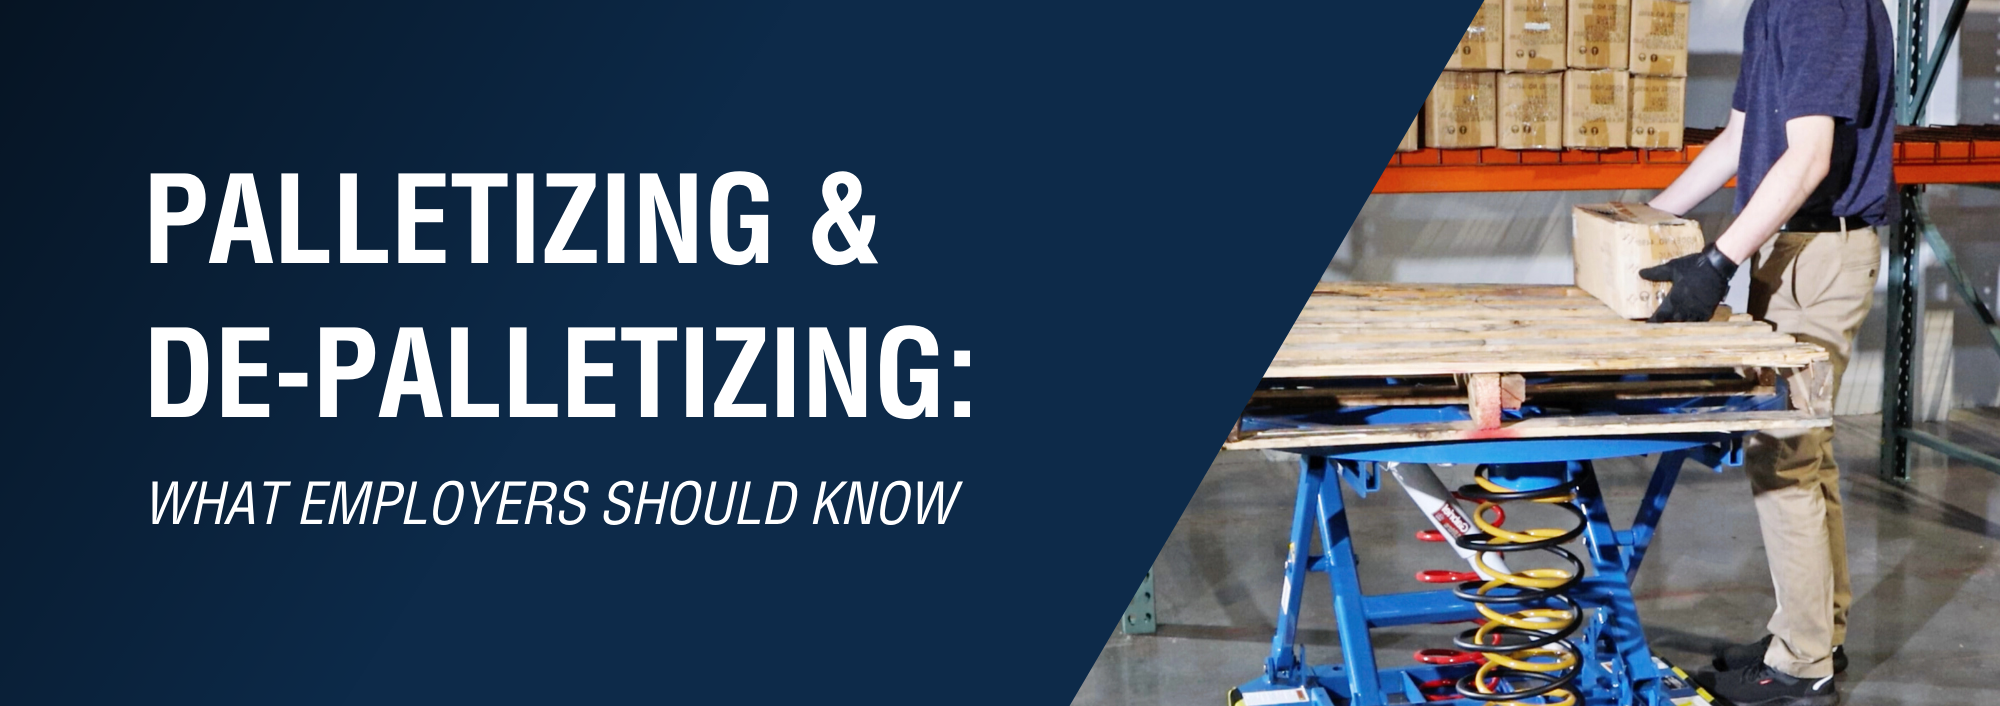 Palletizing and De-palletizing: What Employers Should Know